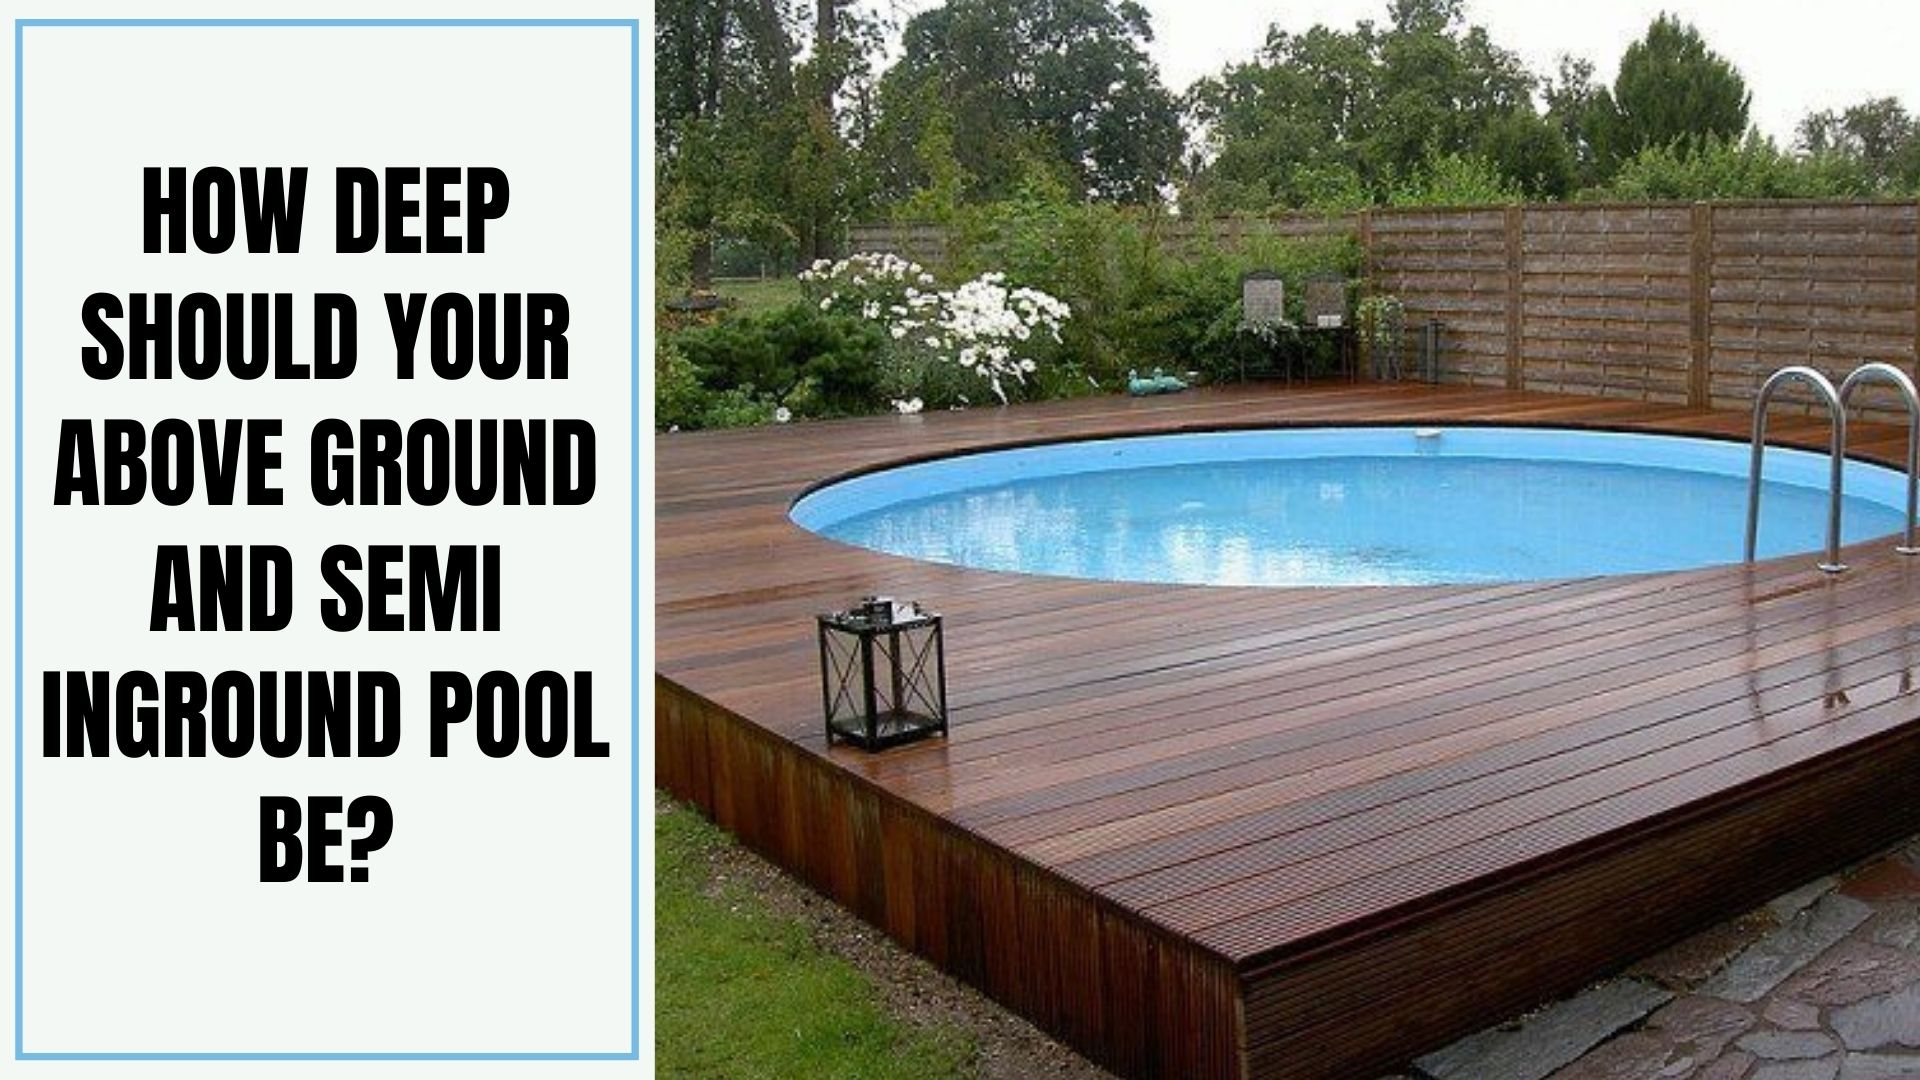 How Deep Should Your Above Ground And Semi Inground Pool Be Good House Decor